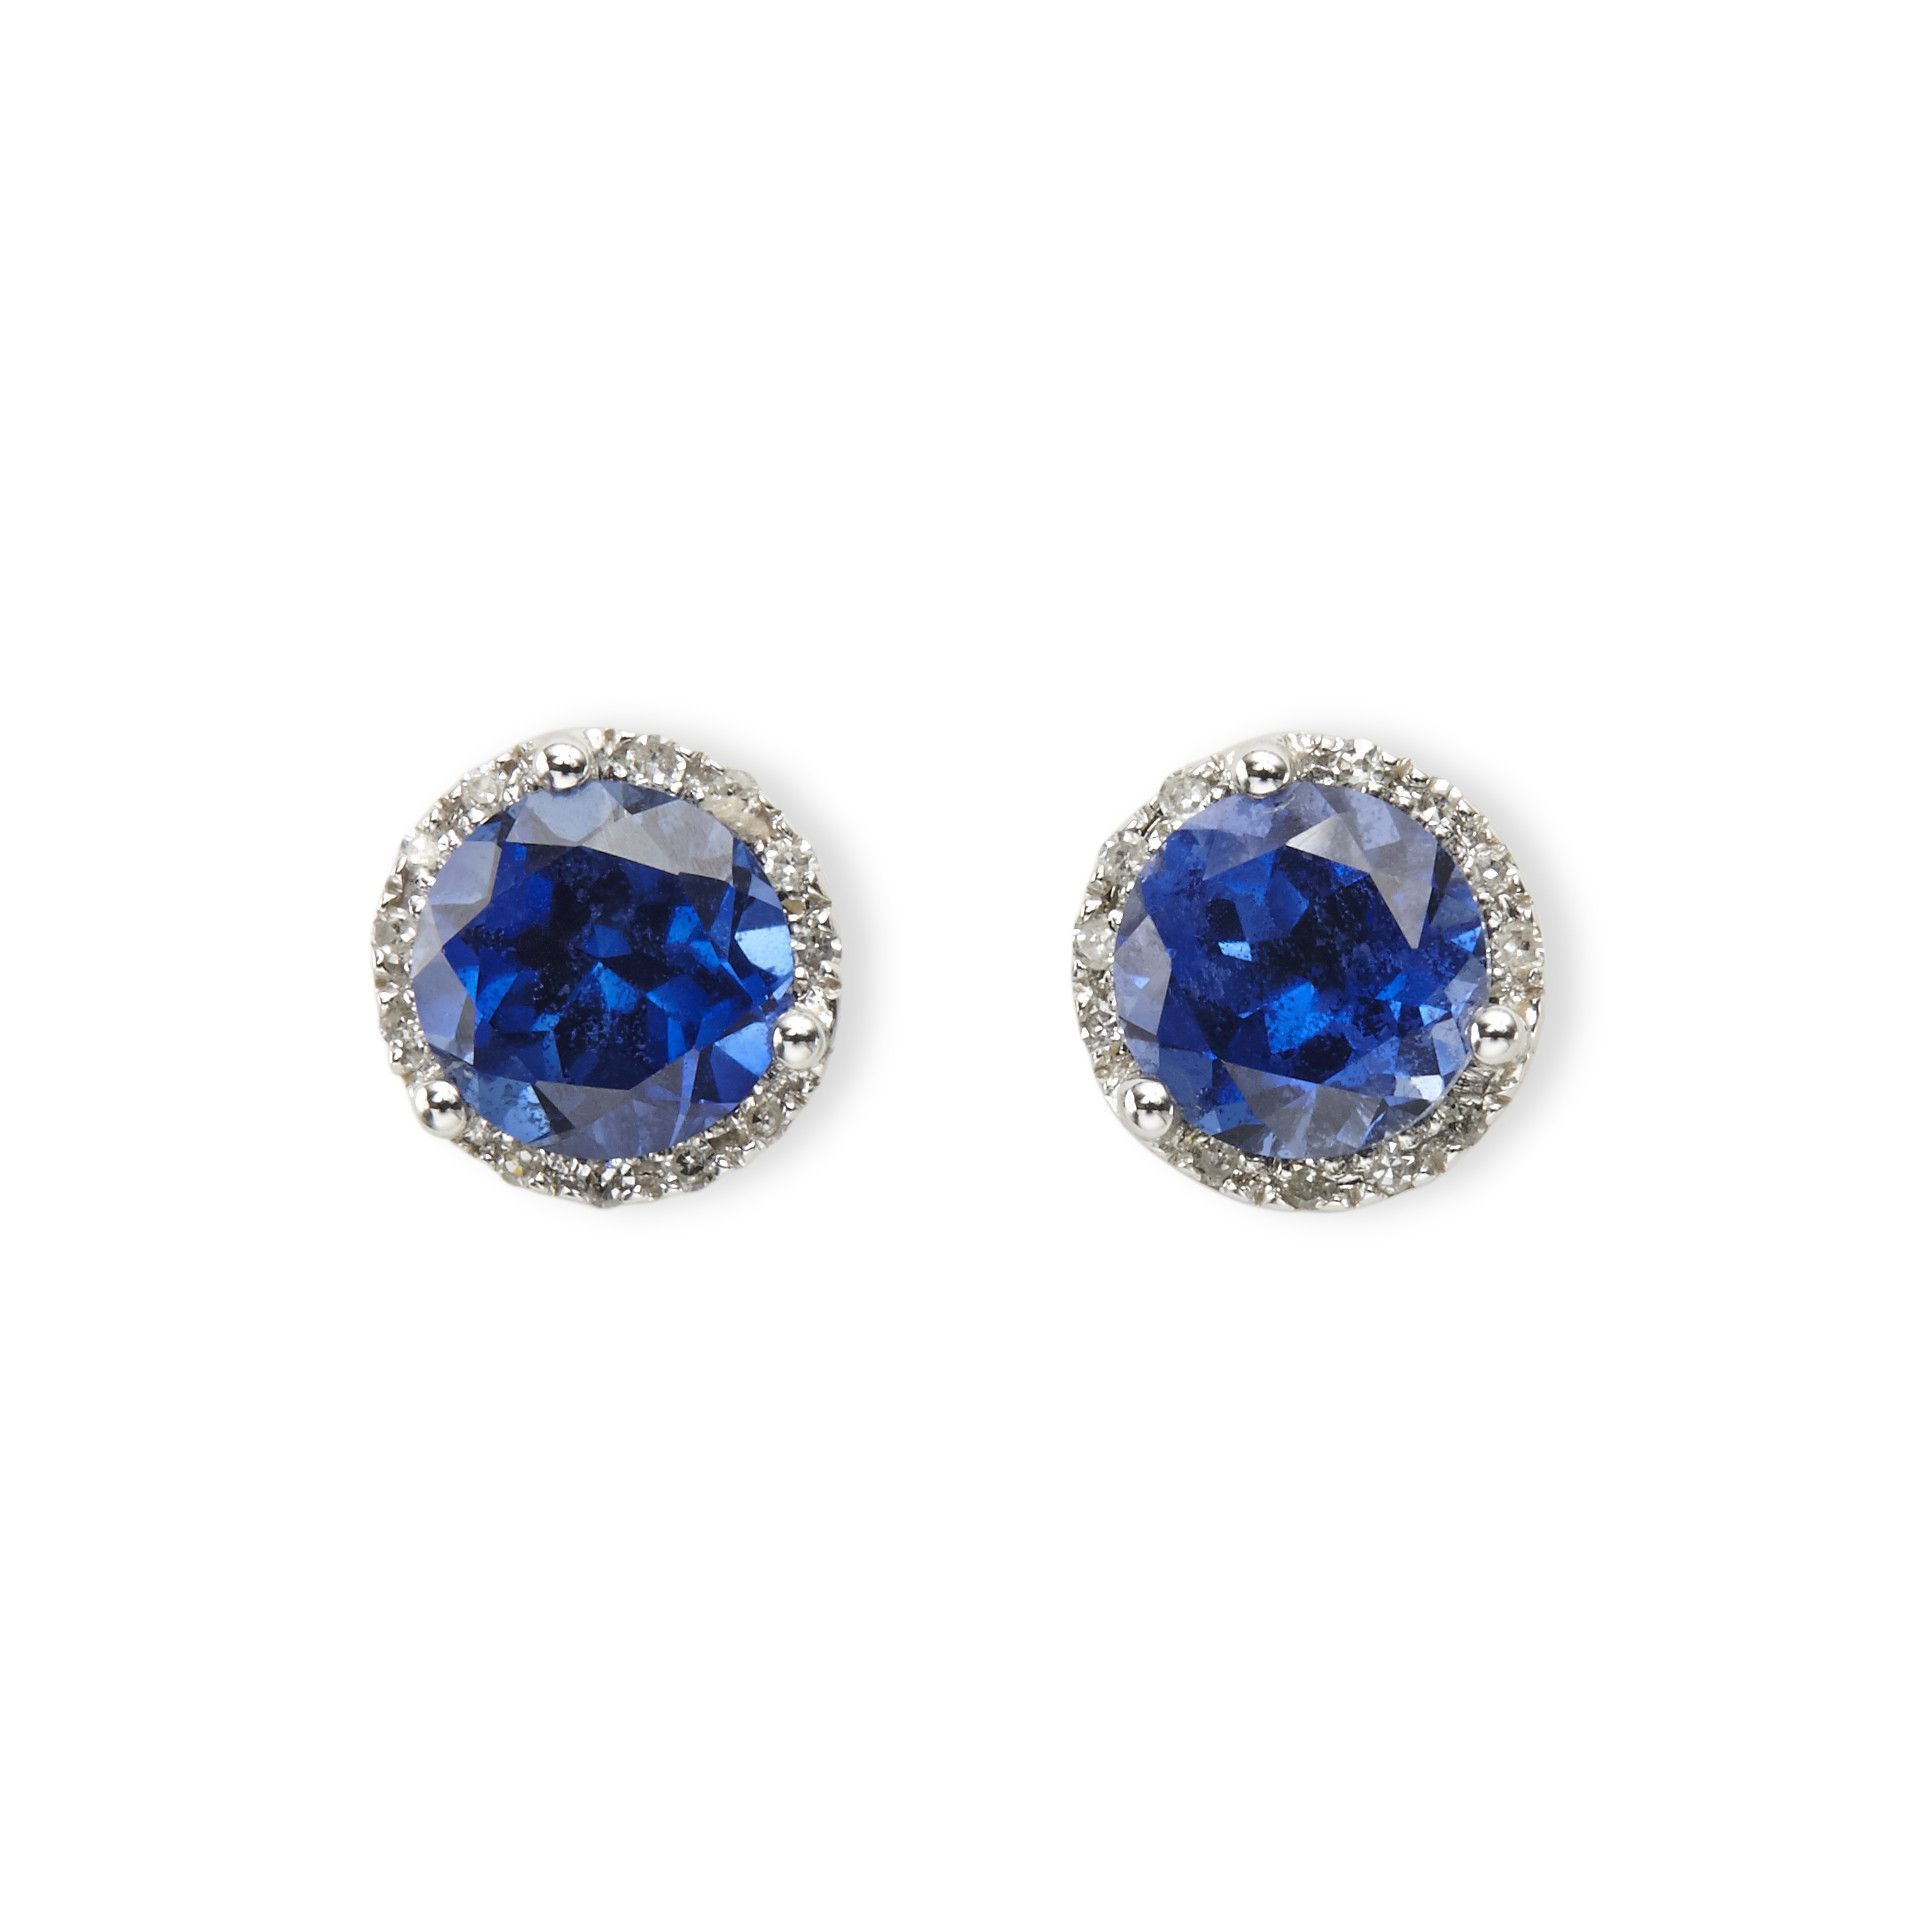 What better Mother's Day gift than jewelry? And what better jewelry than diamond earrings?